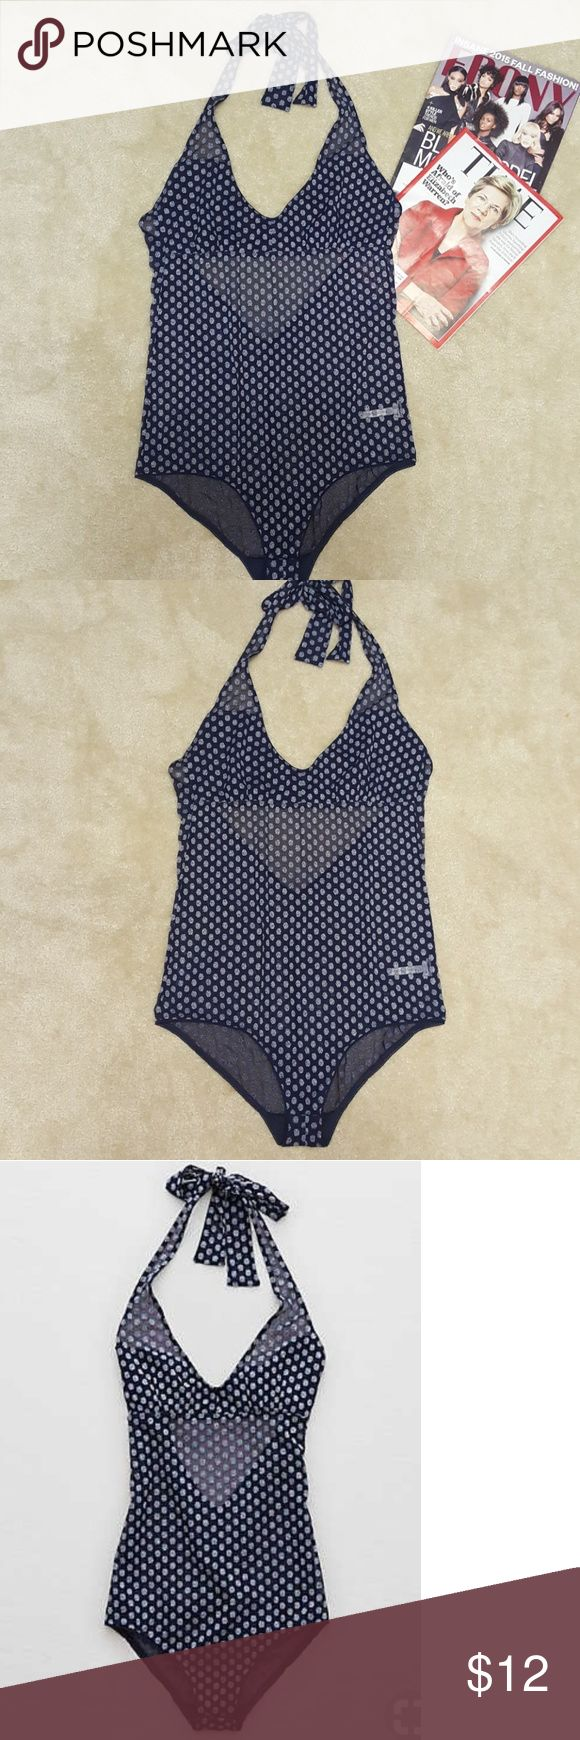 Aerie Real obsessed halter bodysuit Brand new without tags. Smoke and pet free home American Eagle Outfitters Tops